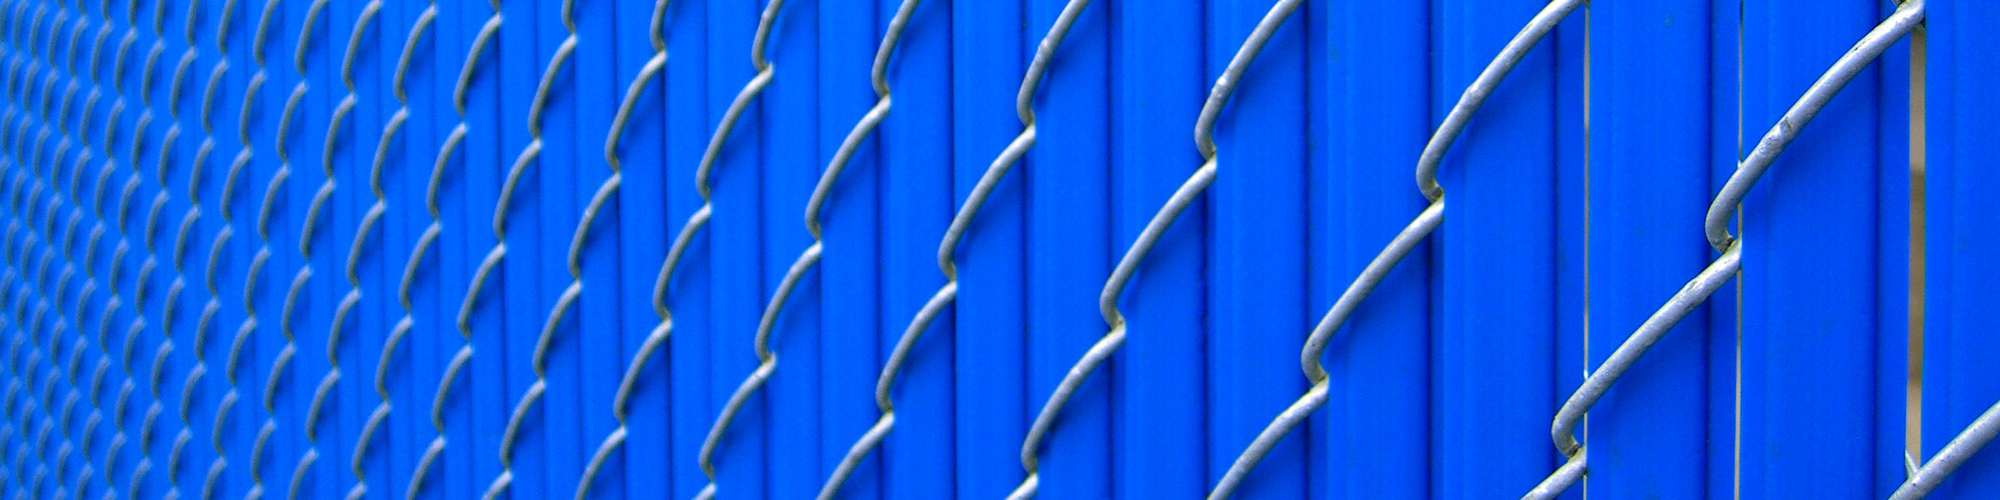 Chain link fencing, chainlink fence, MA, RI, pool fence, galvanized metal fencing, tennis court fence, security chain fencing